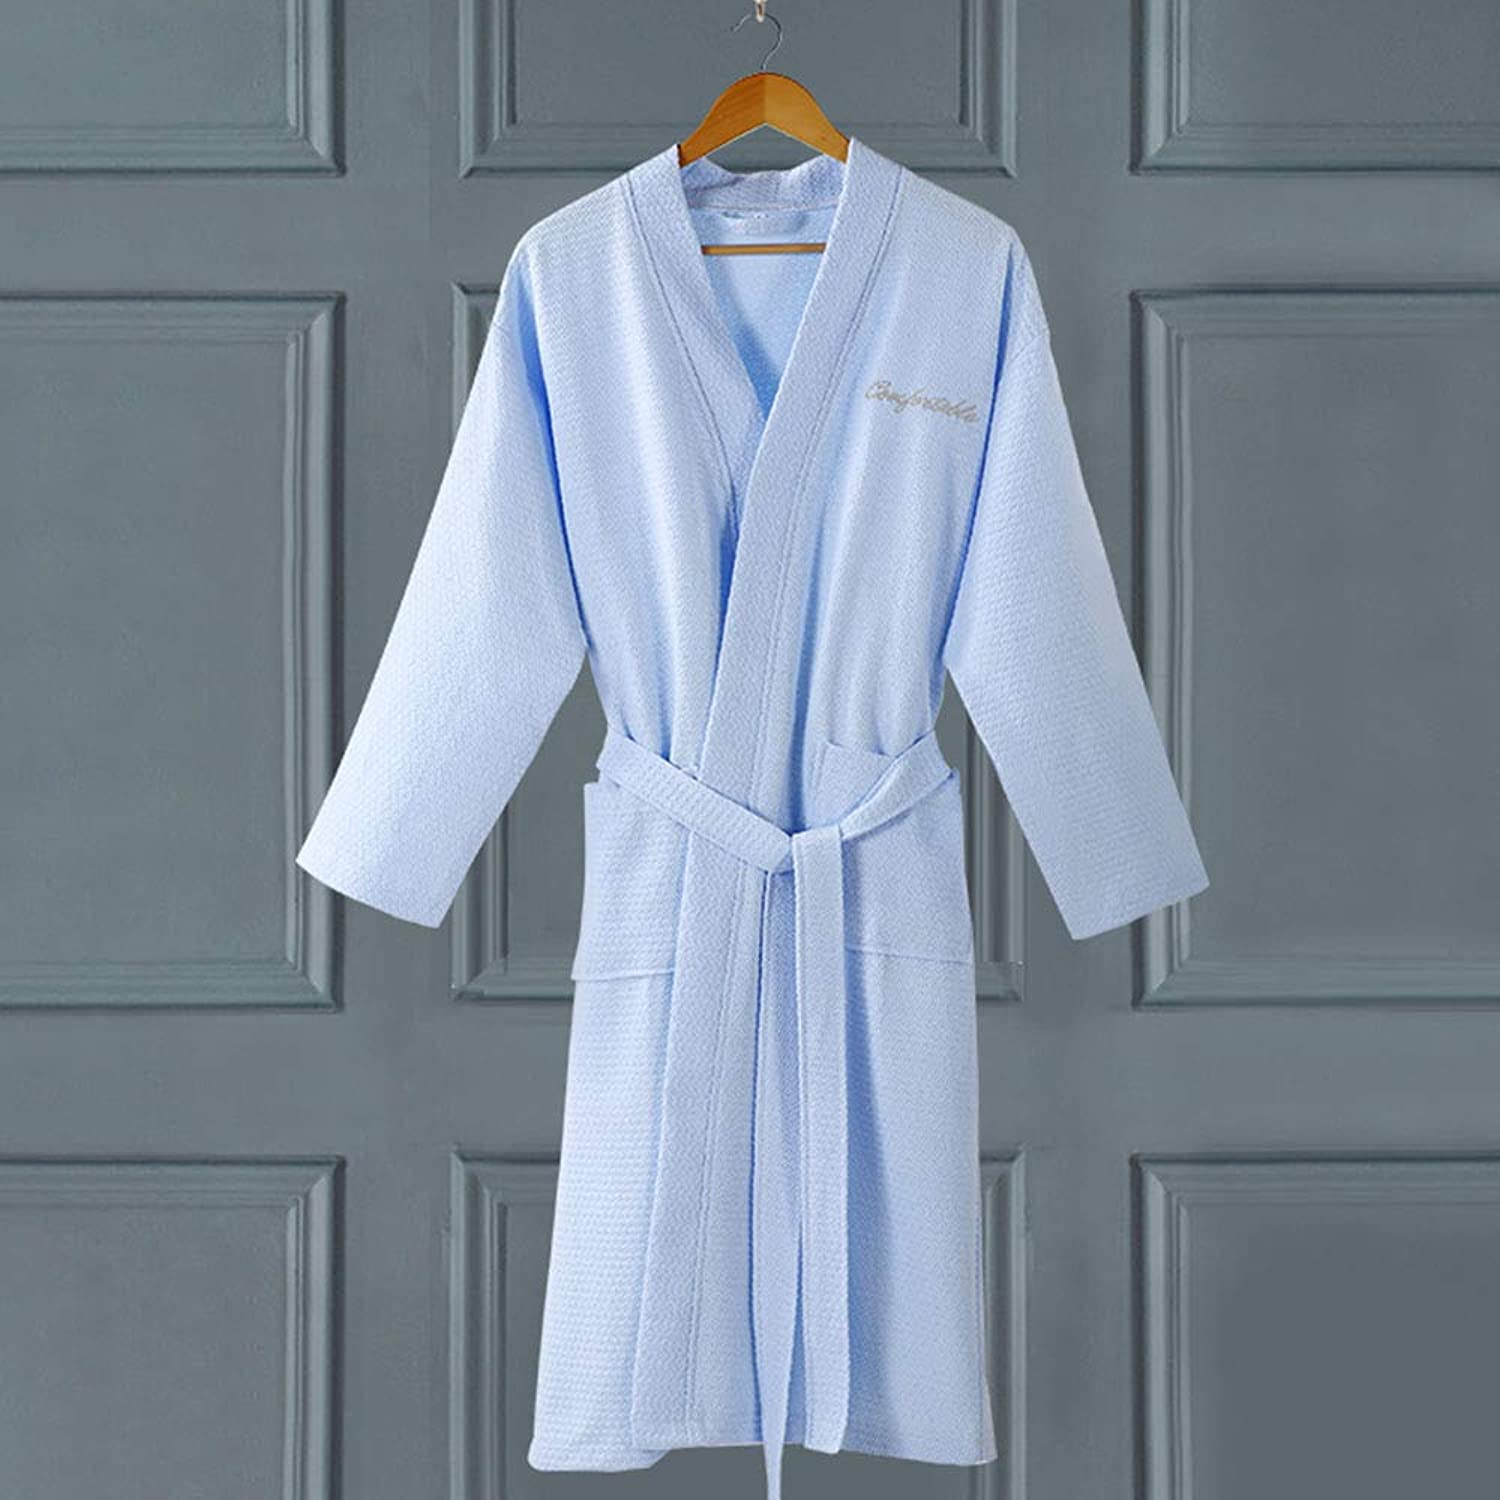 Bathrobes Men Women Thin Bath Robe Soft Cotton Sleepwear Solid color Waffle Kimono